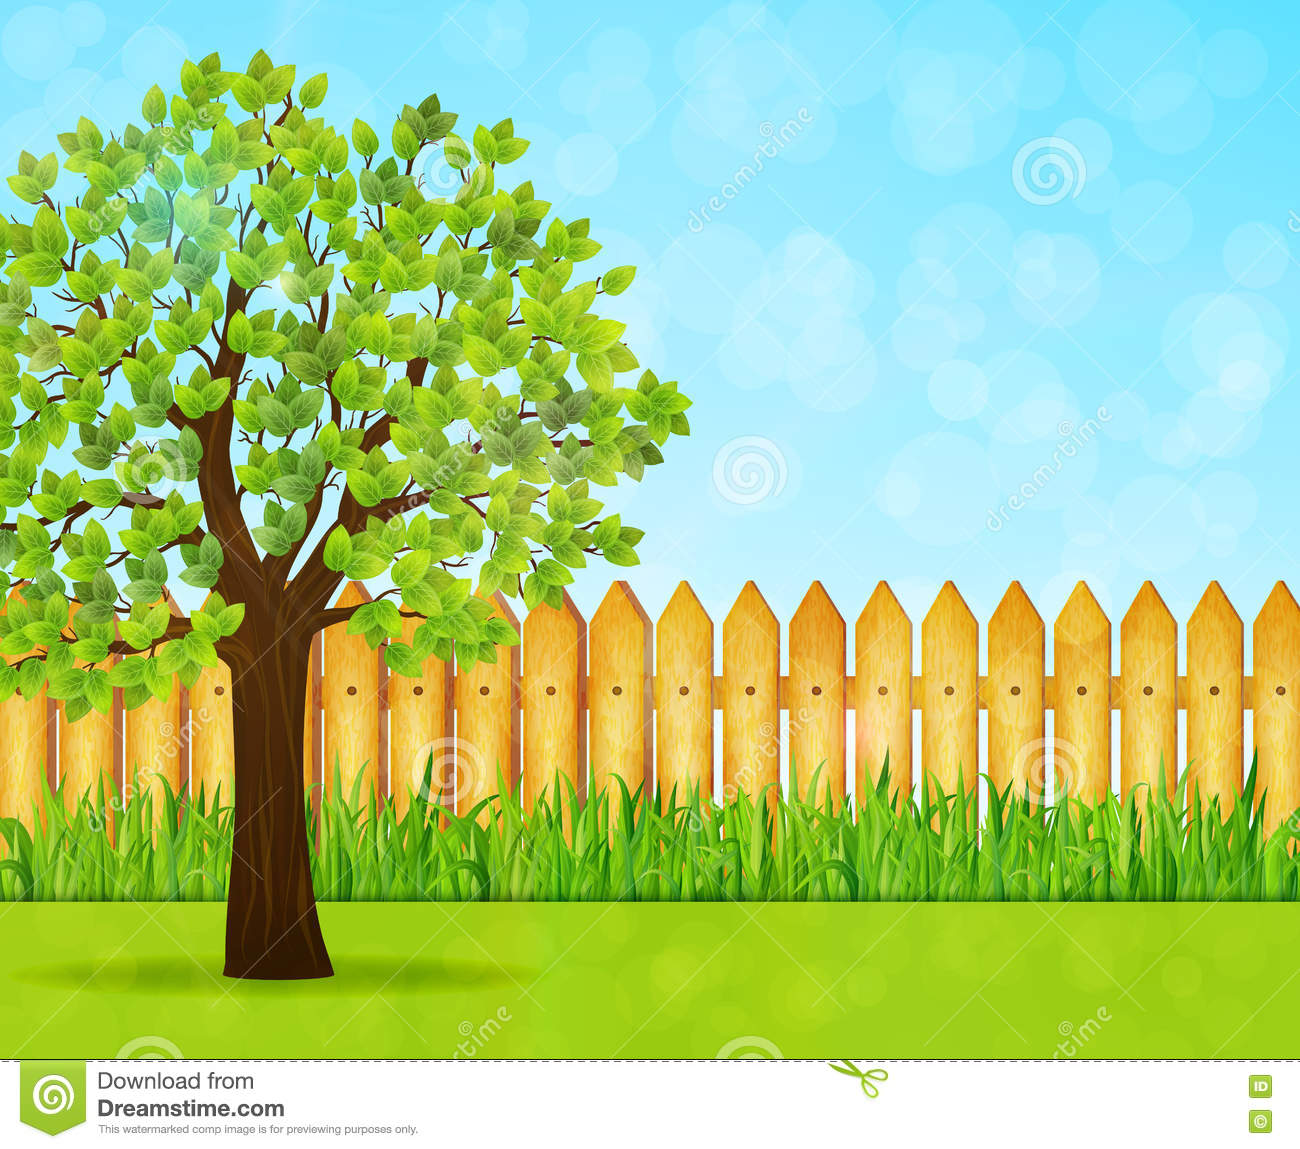 Garden Background With Green Tree And Wooden Fence Stock